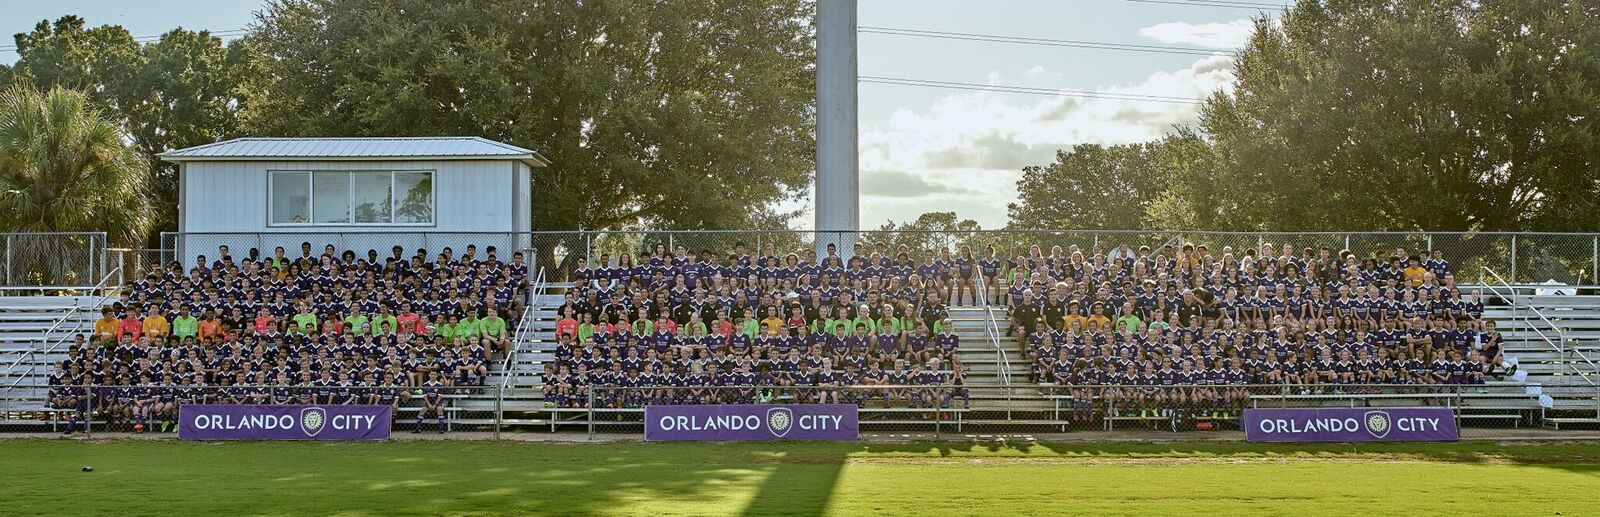 OCYS places 12 players into Professional MLS Club Academy